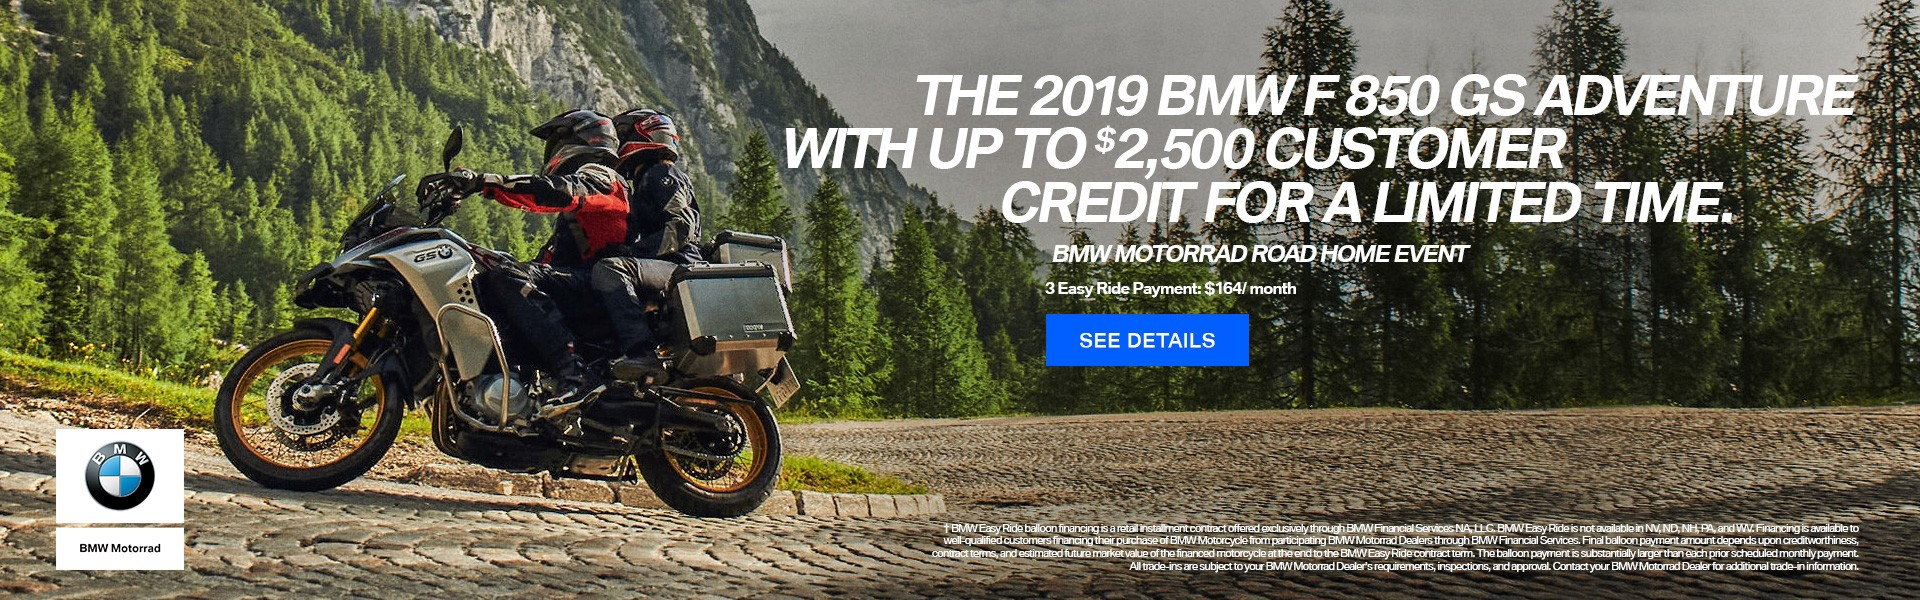 The 2019 BMW F 850 GS ADVENTURE with up to $2500 Customer Credit for a limited time.